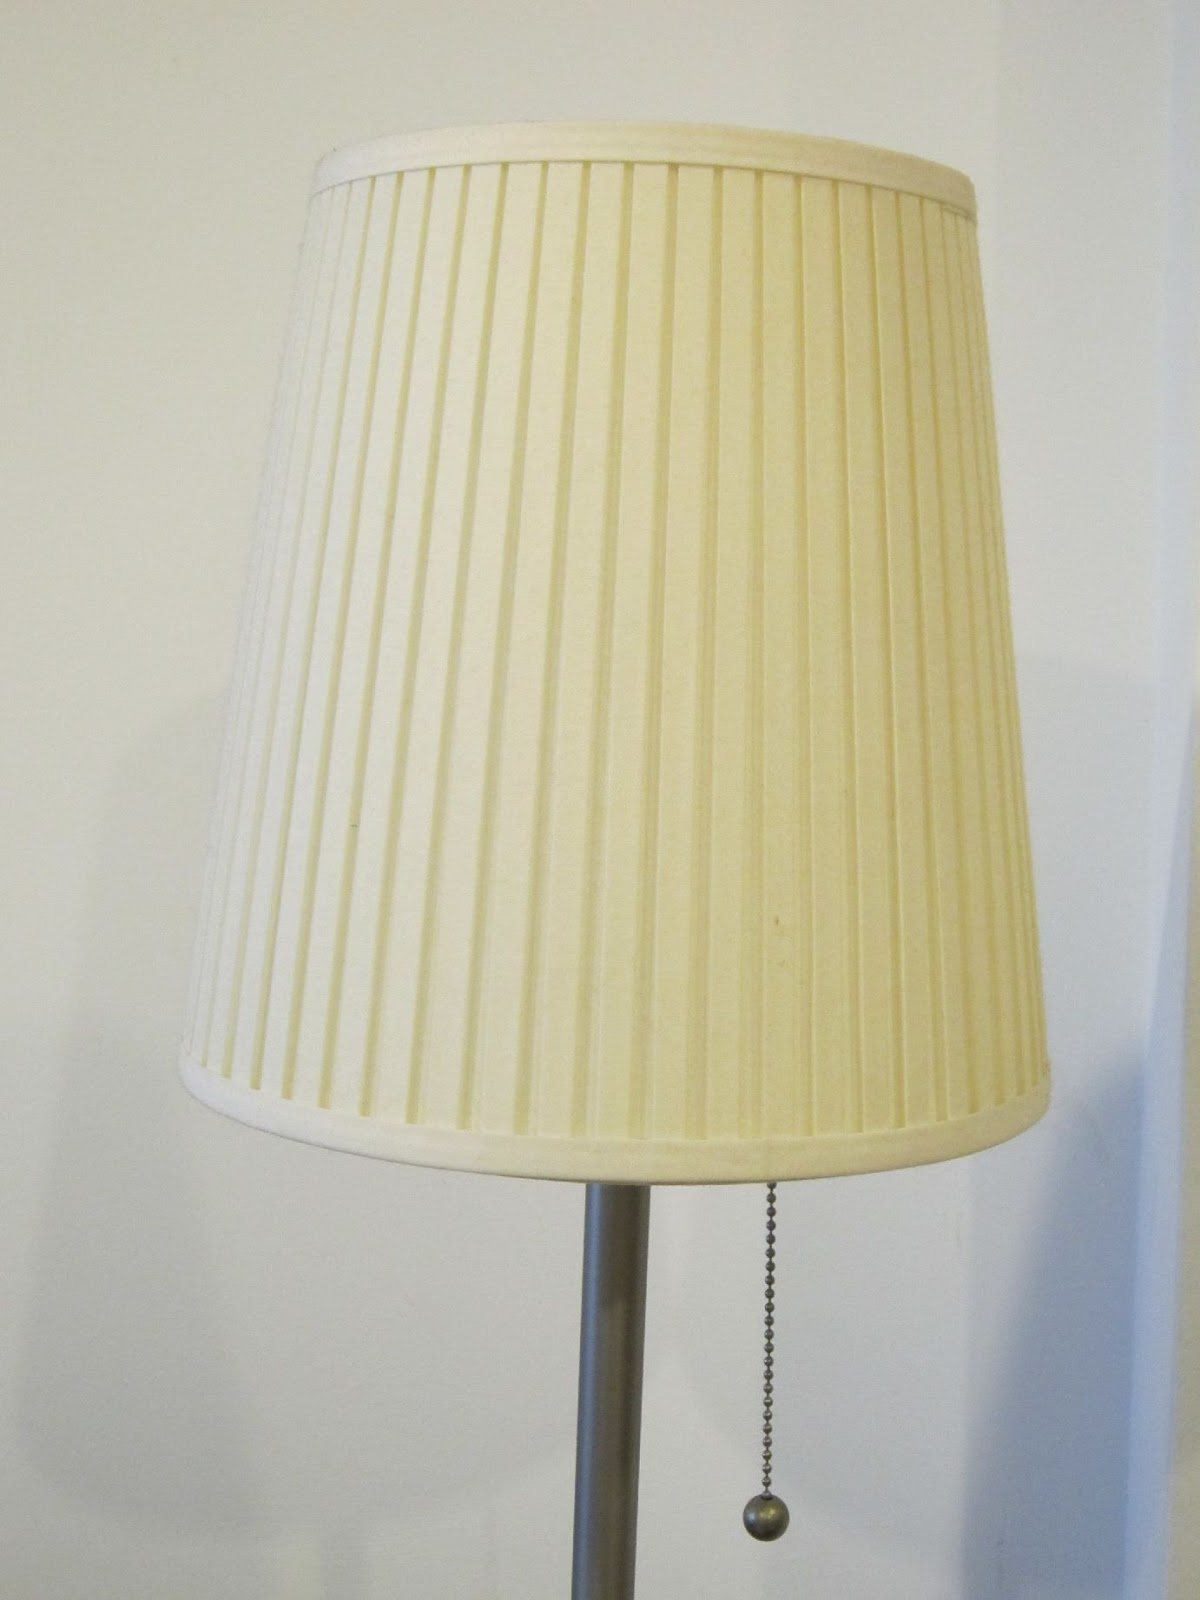 Pieces For The Home Arstid Ikea Floor Lamp 35 Reserved